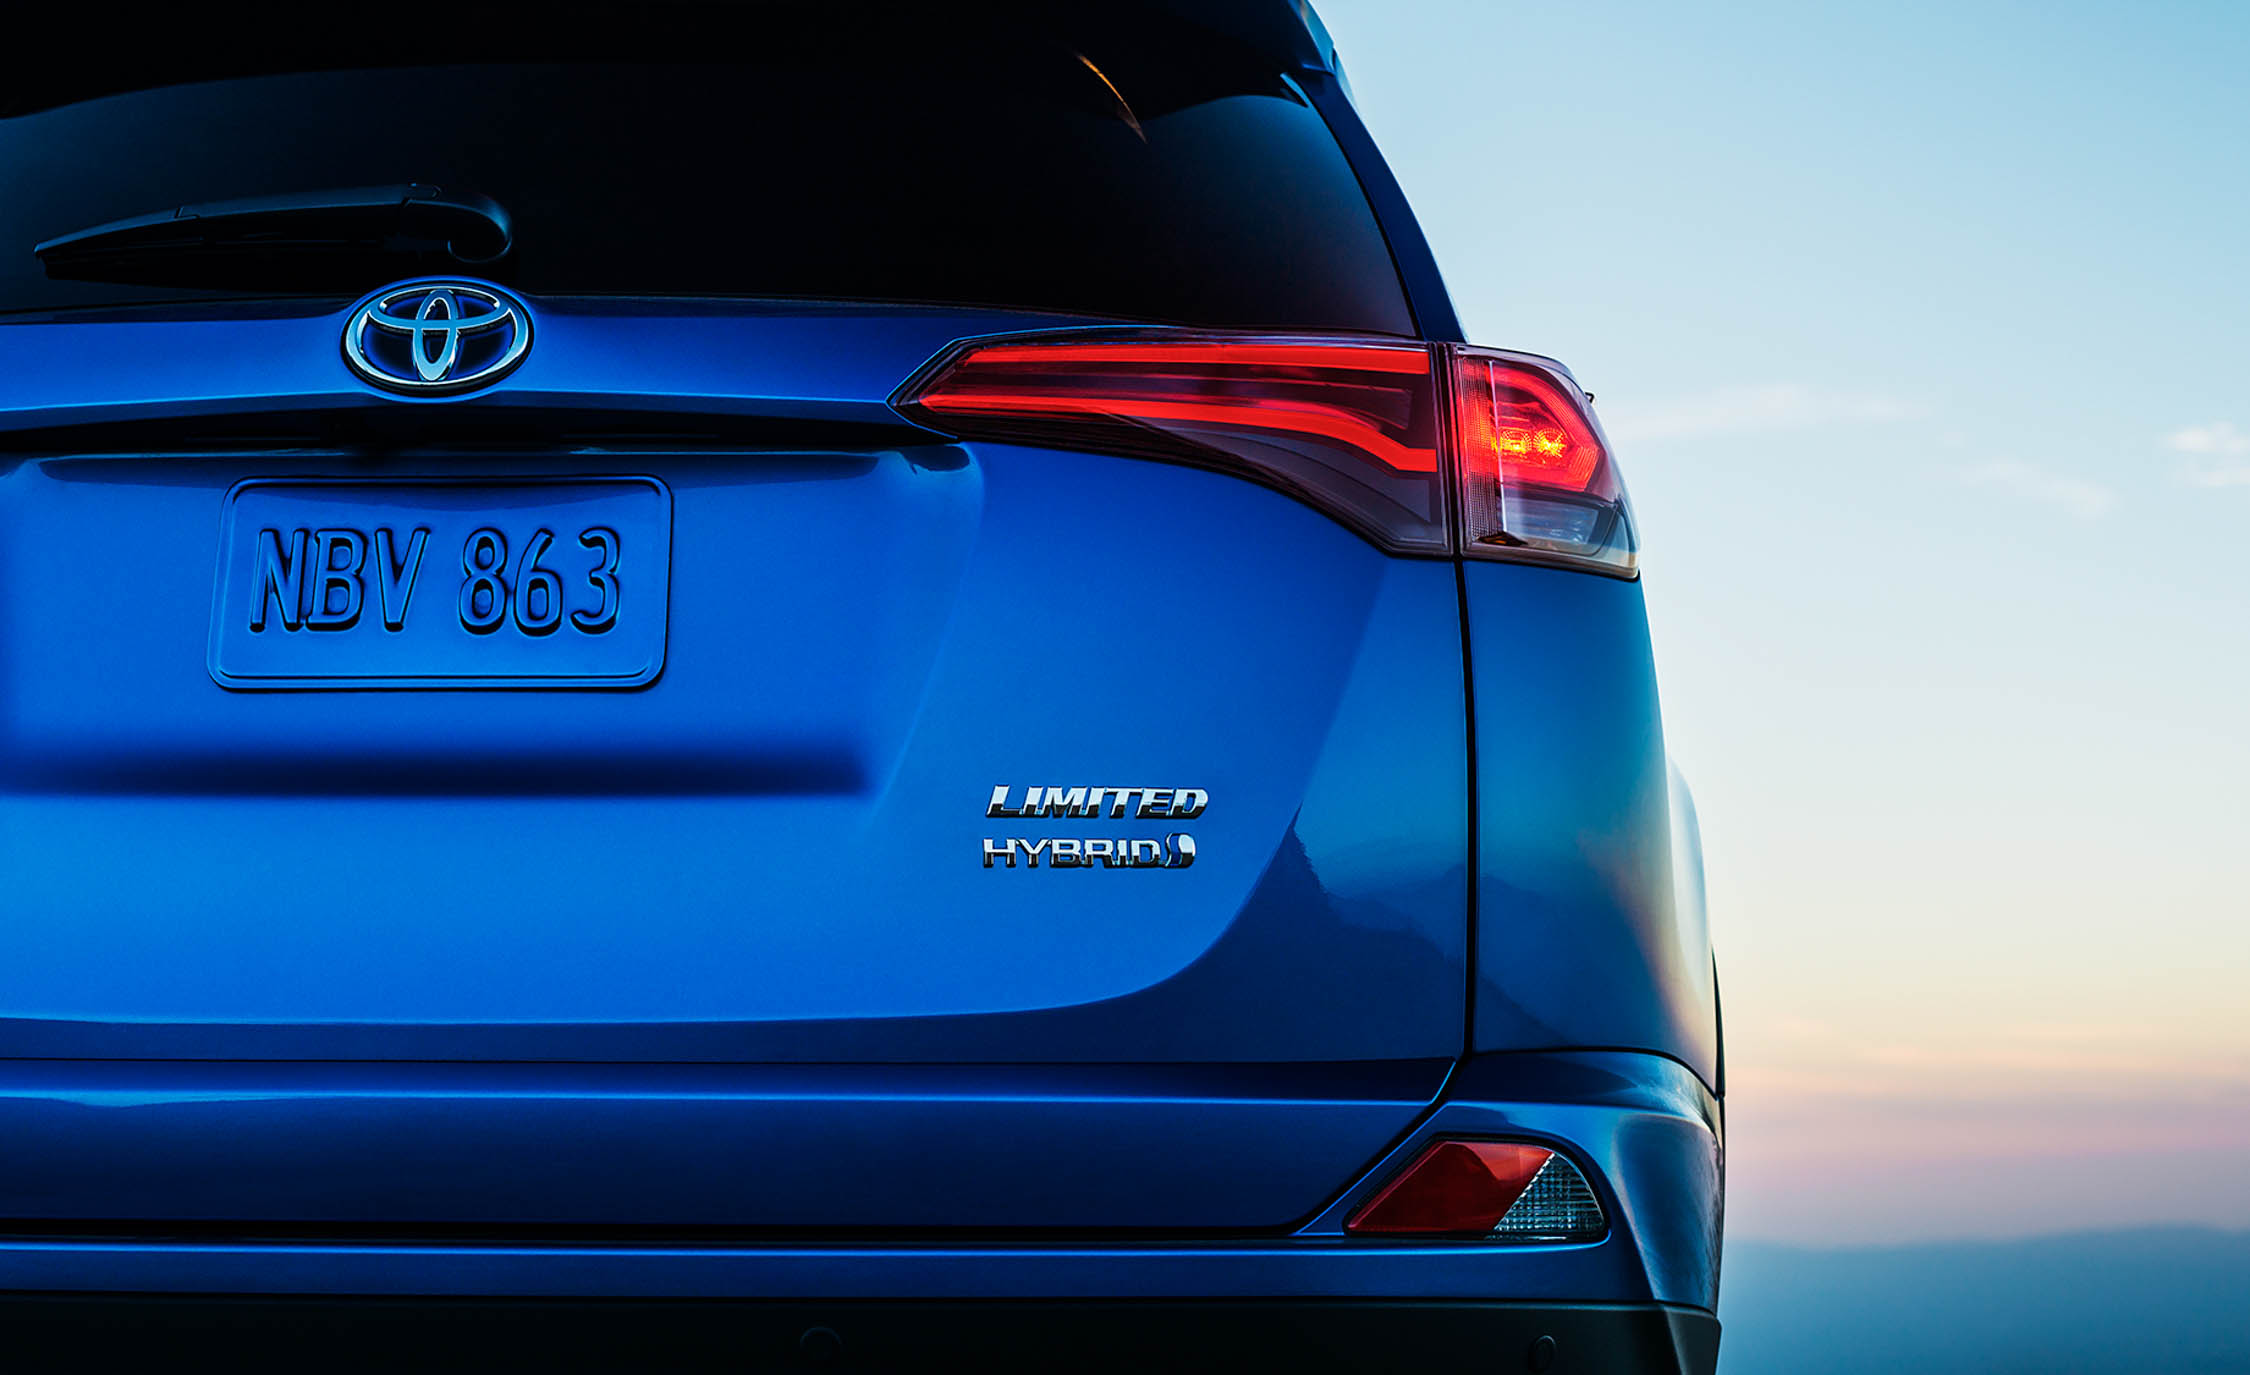 2016 Toyota Rav4 Hybrid Exterior Taillight (Photo 12 of 26)